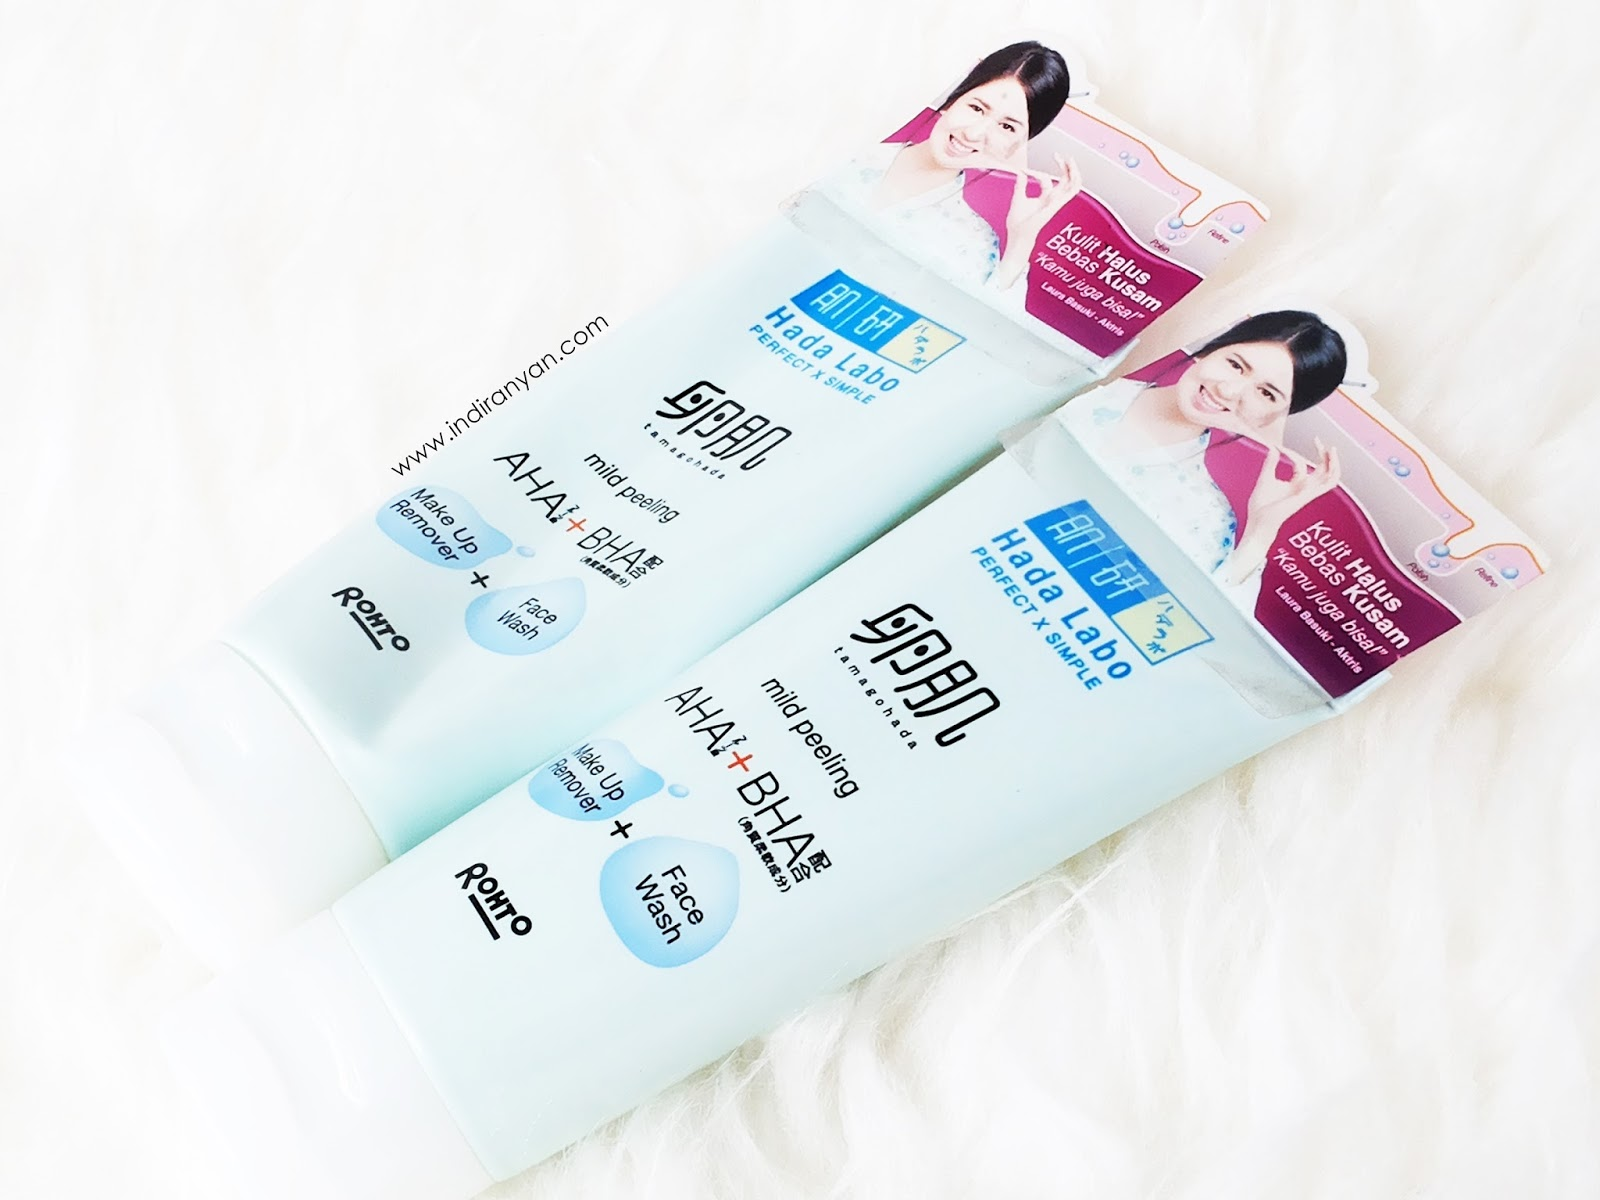 Hada-Labo-Tamagohada-Ultimate-Mild-Peeling-Face-Wash-Make-Up-Remover